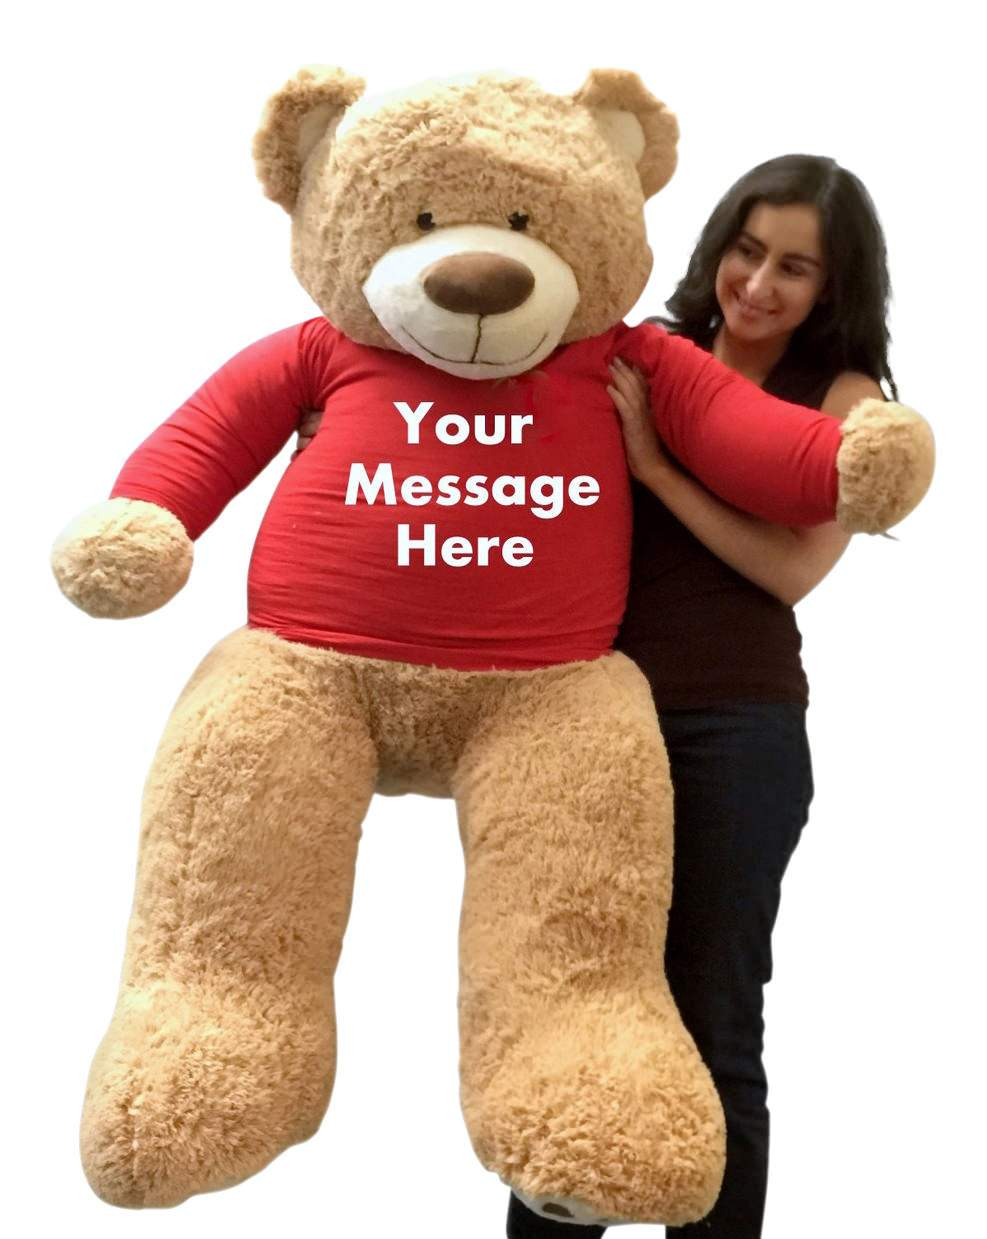 04902fdbf52 Personalized Big Plush 5 Foot Giant Teddy Bear Wearing Customized Red Color  T-Shirt with ...